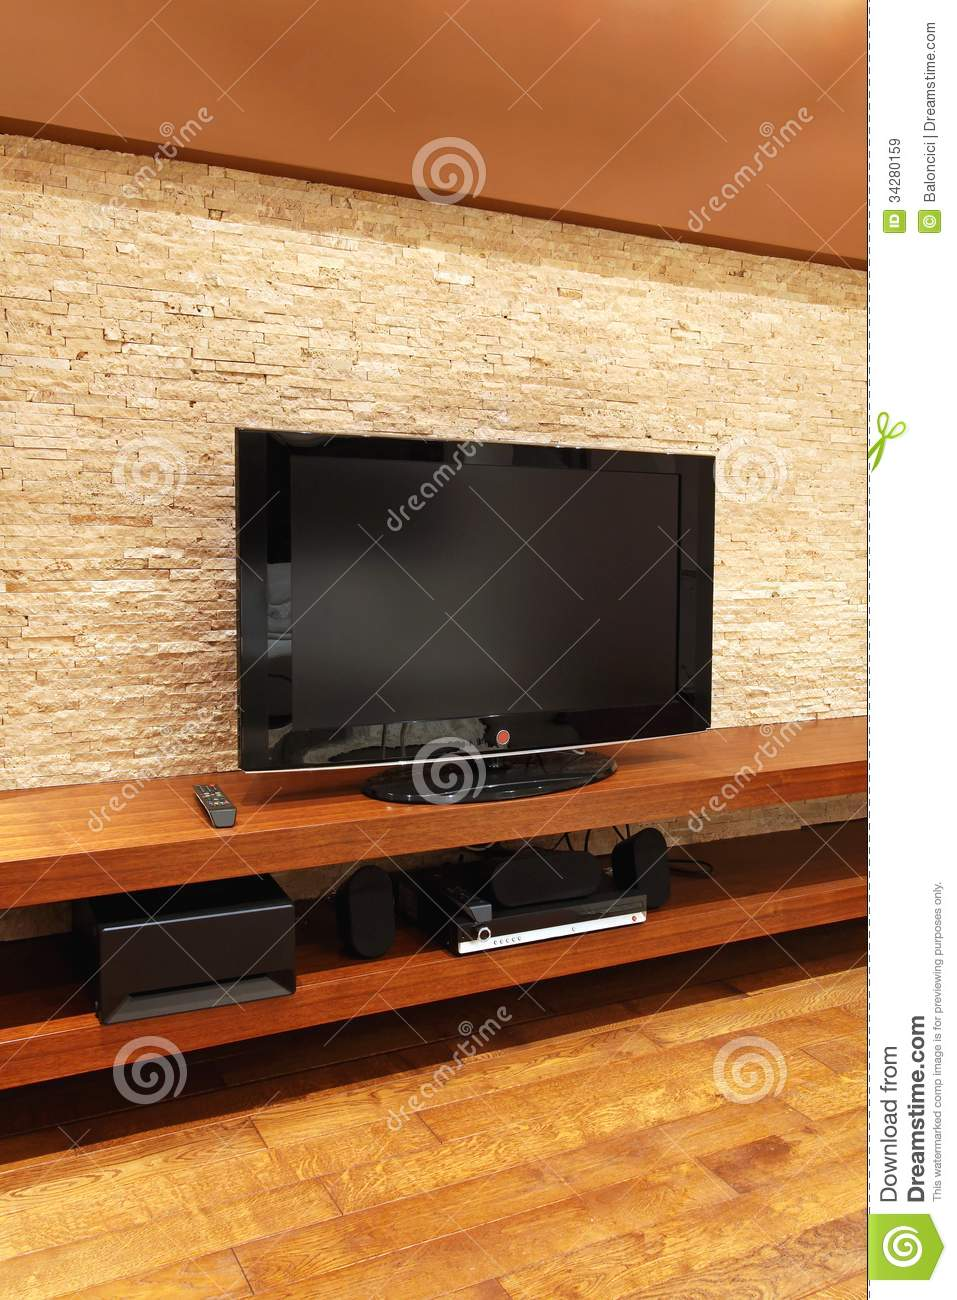 Floating TV Stand Royalty Free Stock Images - Image: 34280159